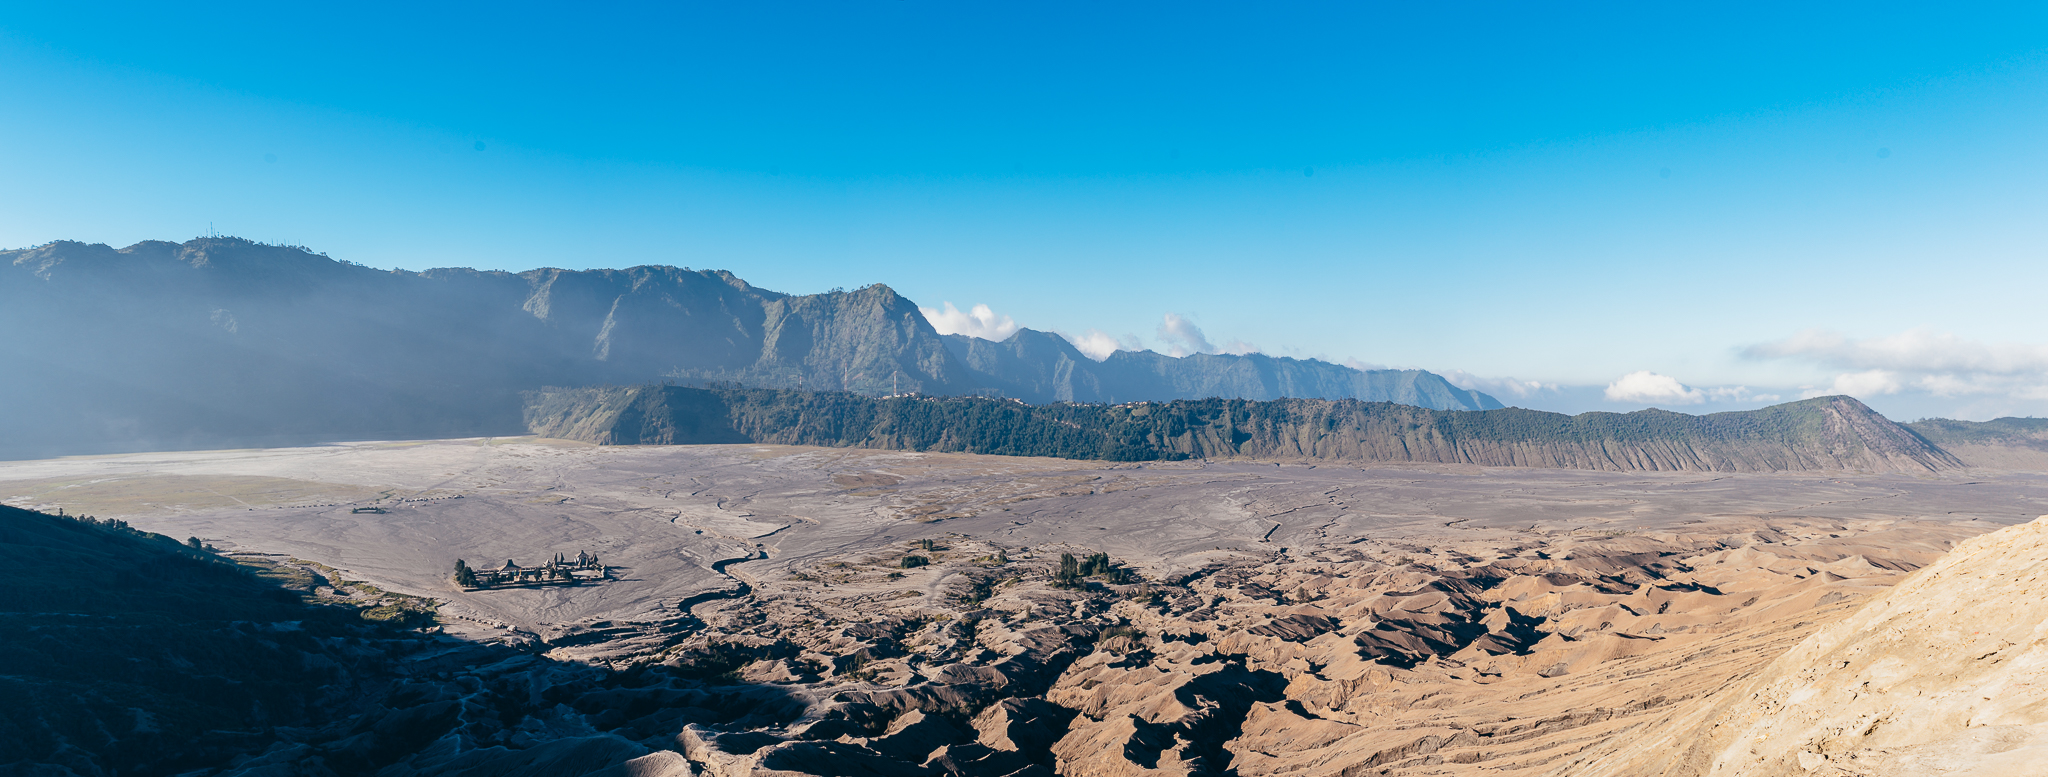 Perspective from the top of Bromo. You can see the Hindu temple on the left side of the photo.